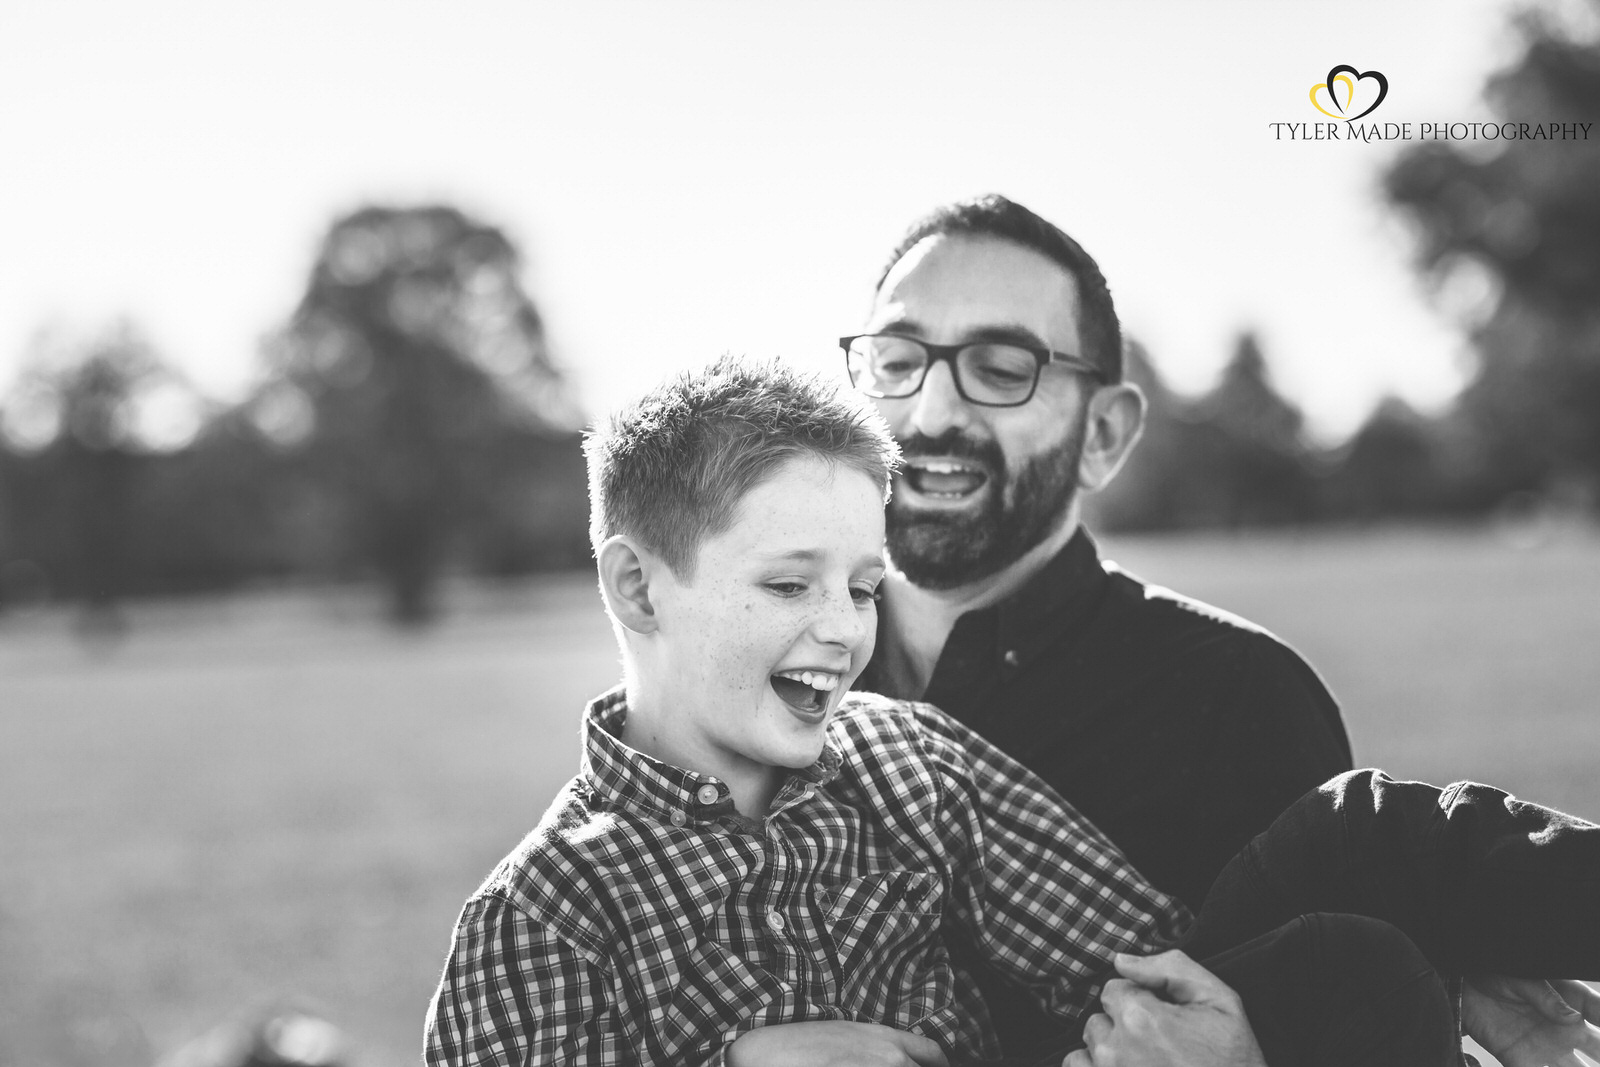 Boy being carried by his dad and laughing by Tyler Made Photography